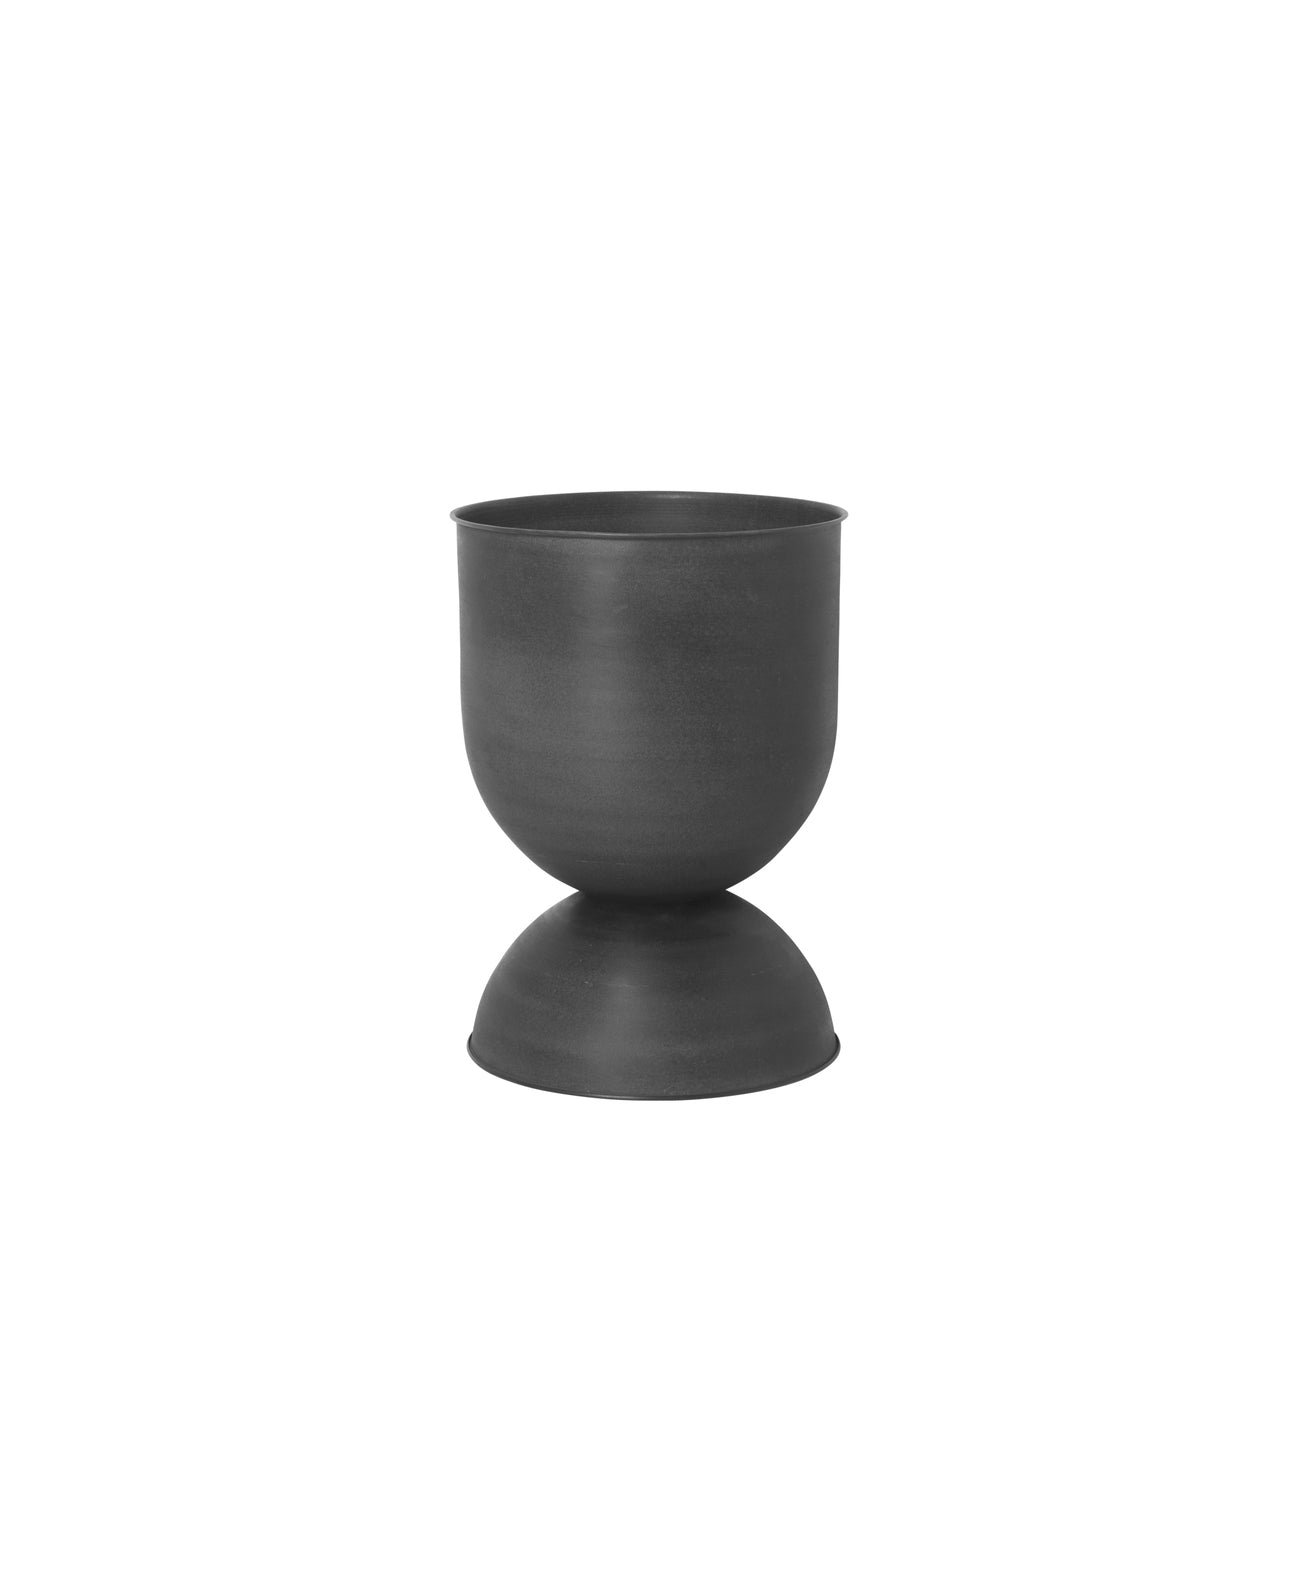 "16"" Ferm Living Hourglass Pot in Black"